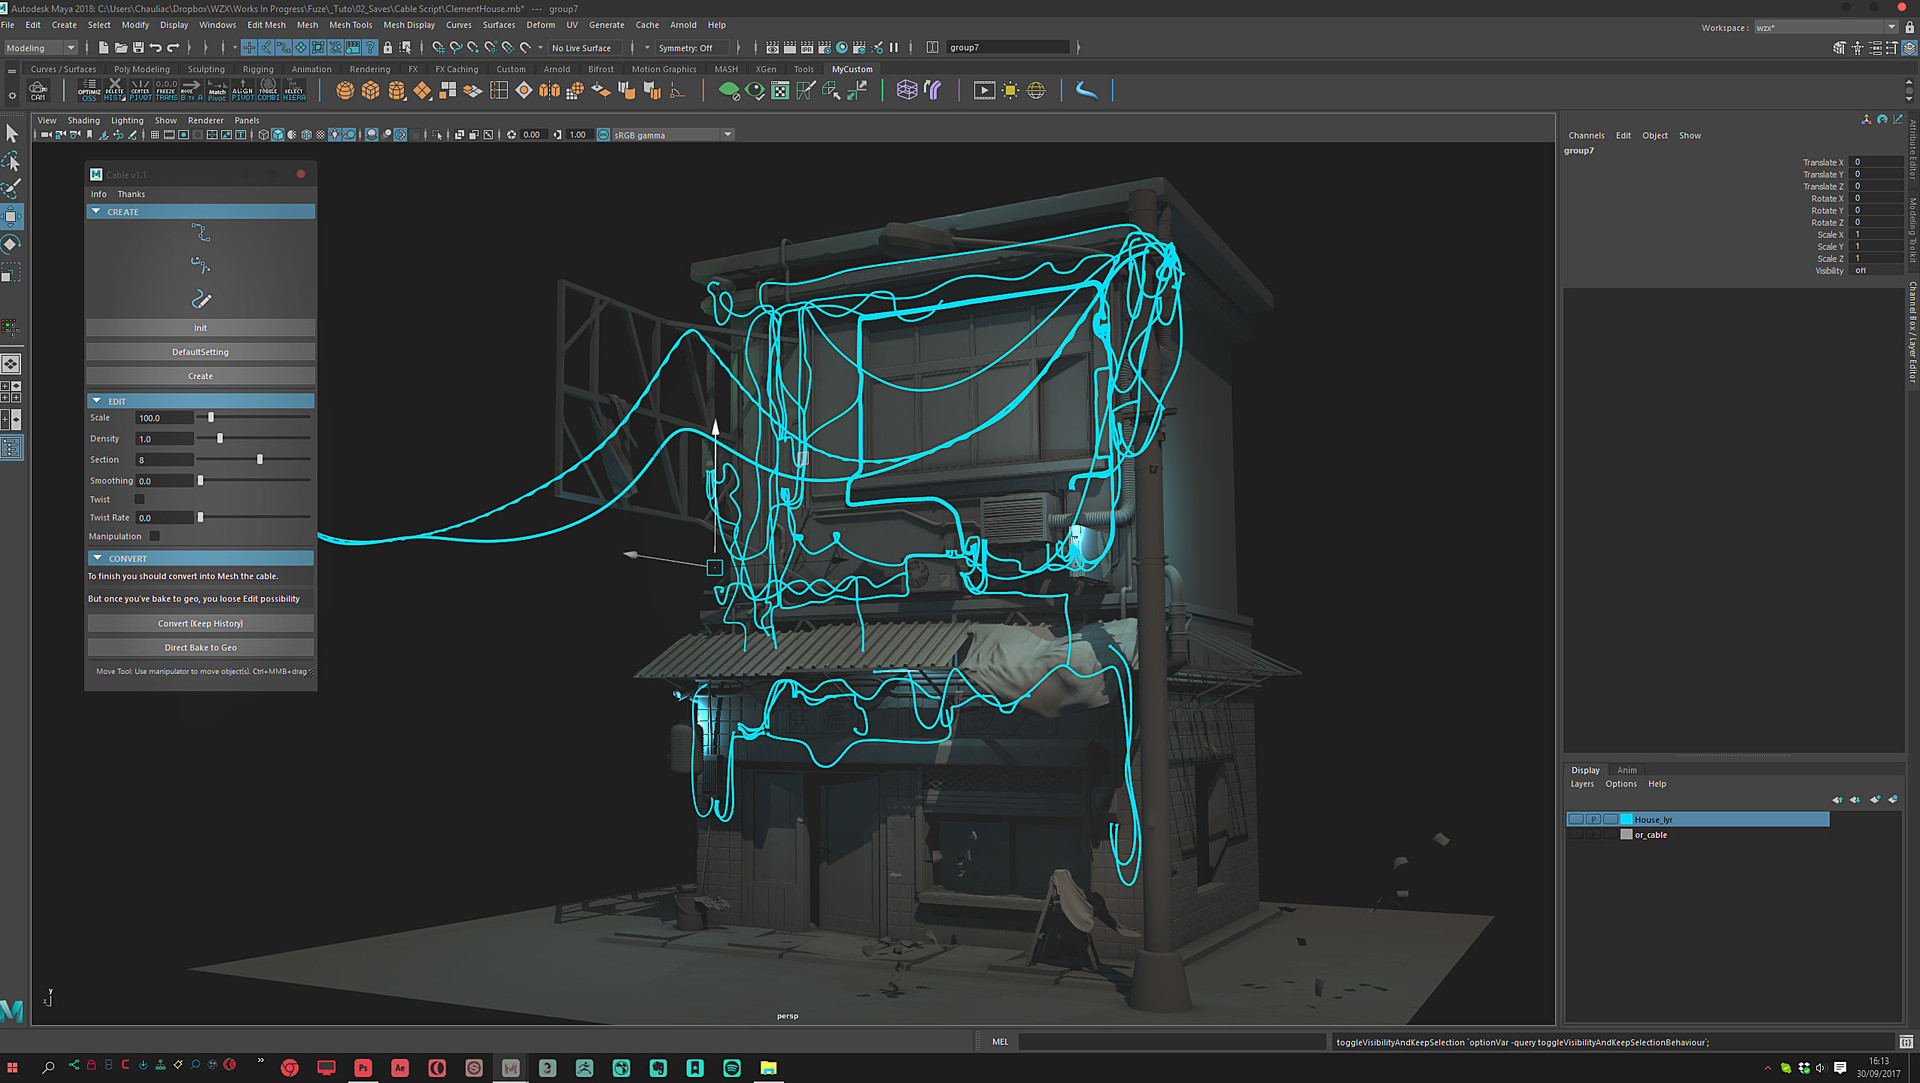 ArtStation - CABLE Script for Maya, - Wizix -